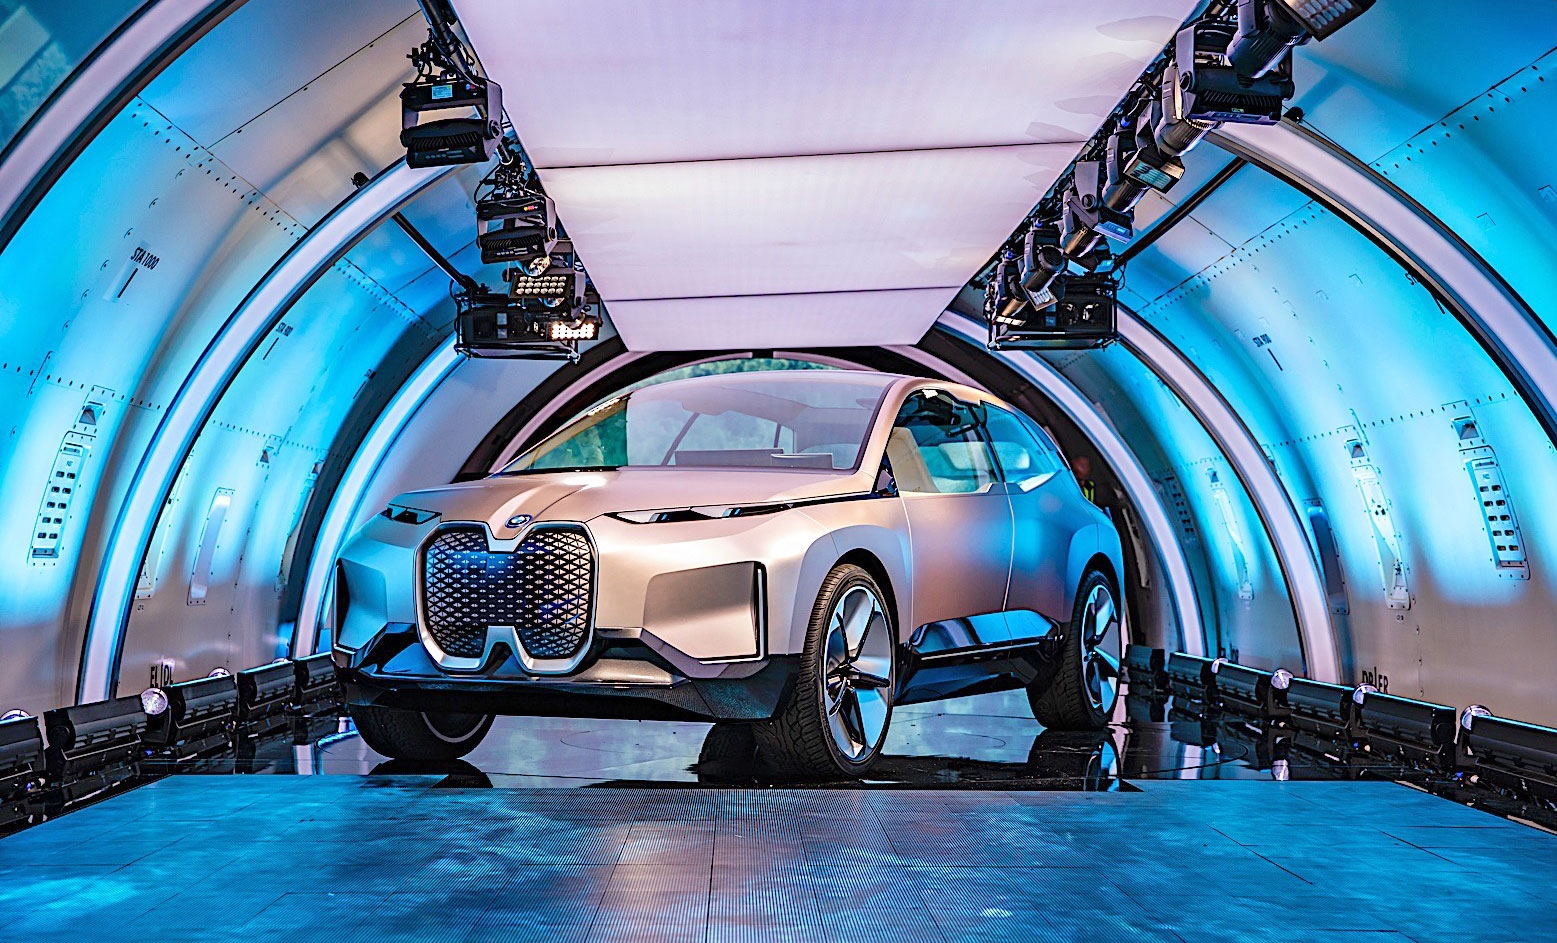 BMW unveils its vision for the 'iFuture' of luxury vehicles | DeviceDaily.com